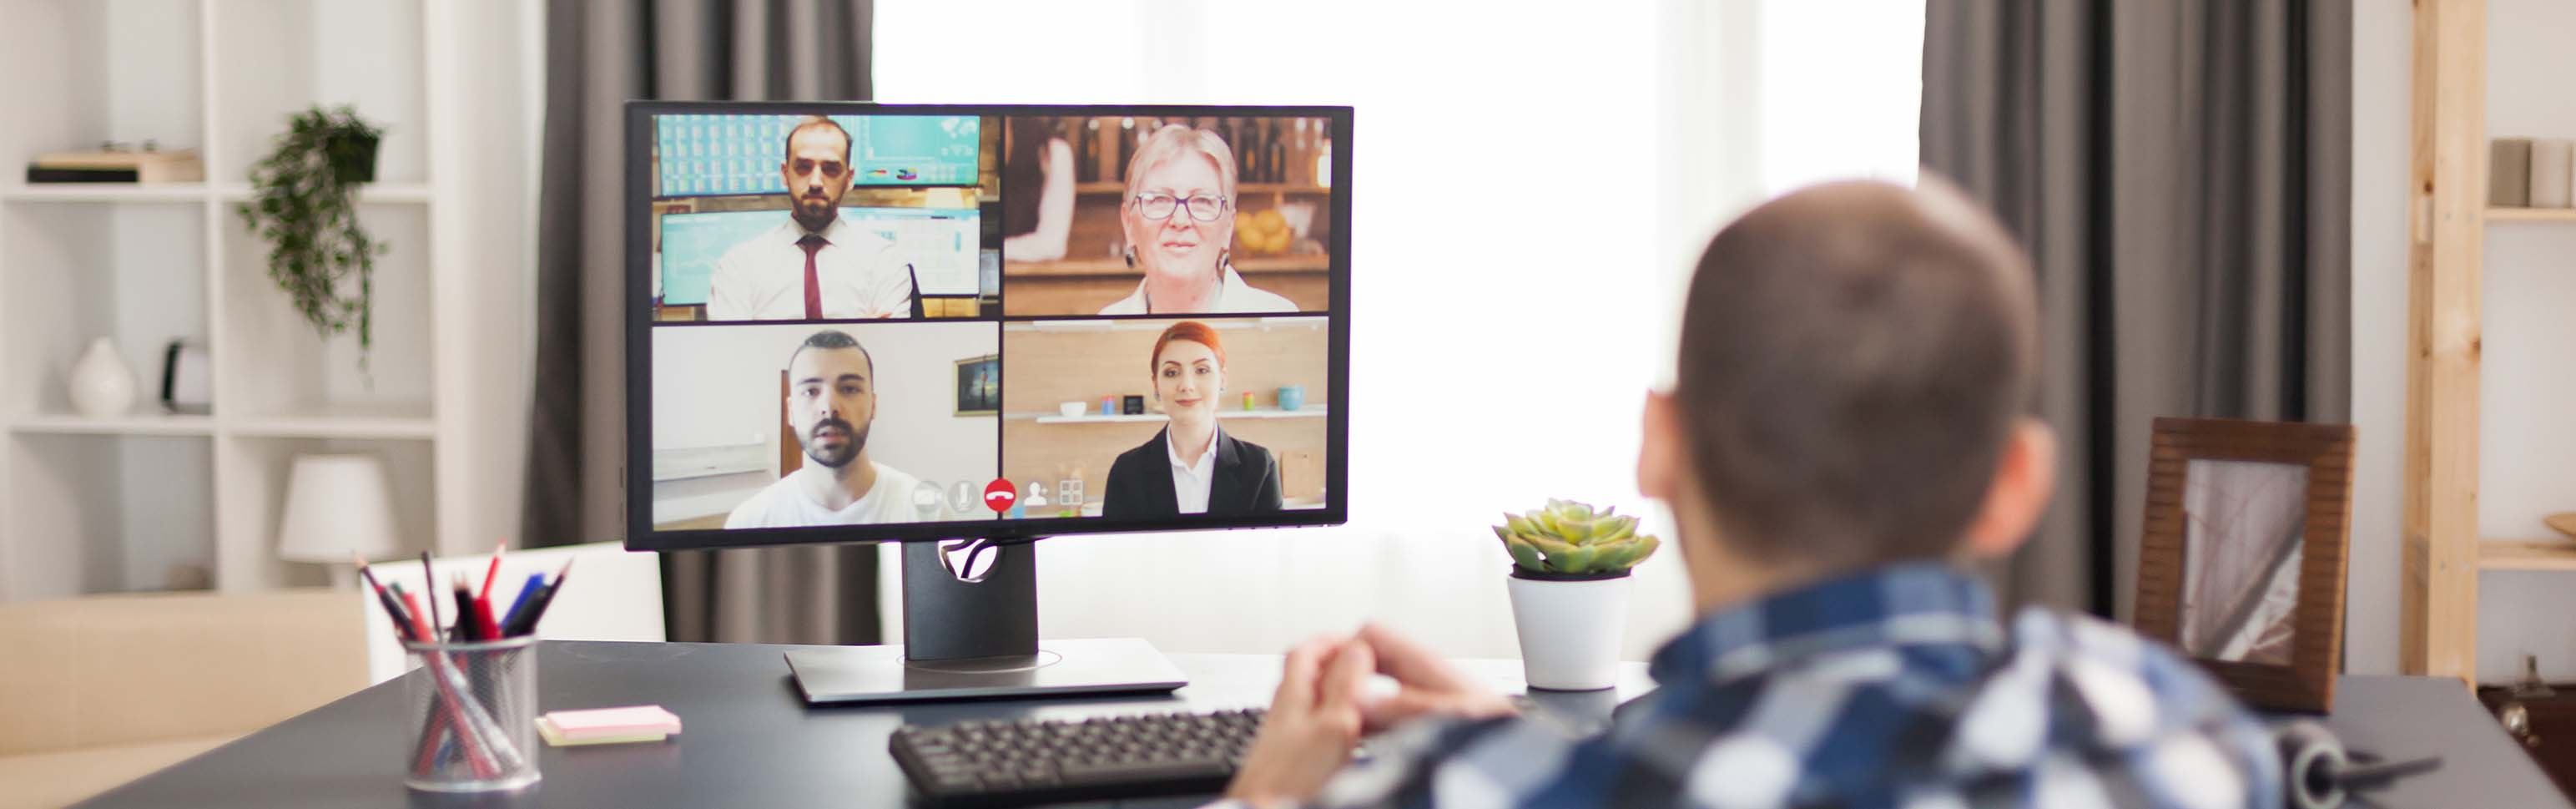 online-video-conference-E4PWR4N-1.jpg